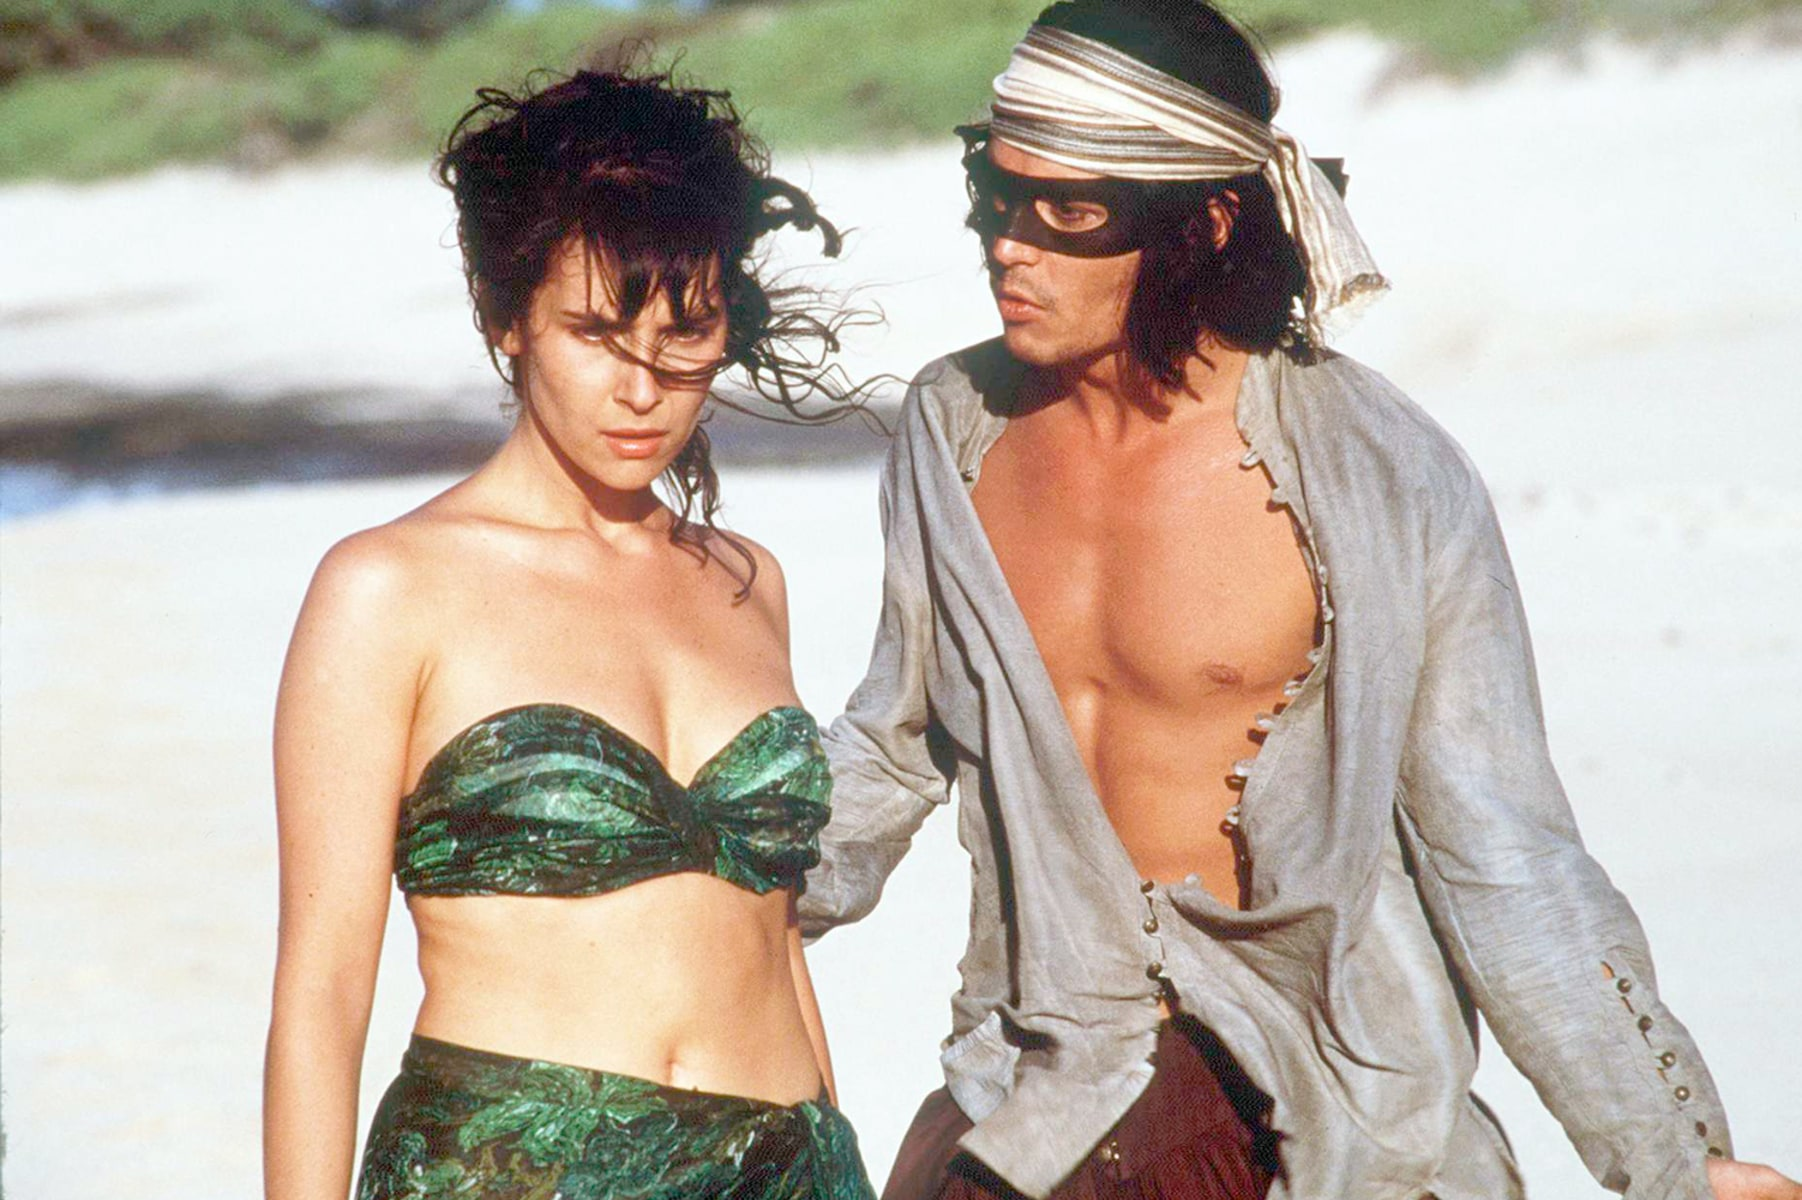 Johnny Depp Is Engaged, He Confirms To TODAY's Savannah